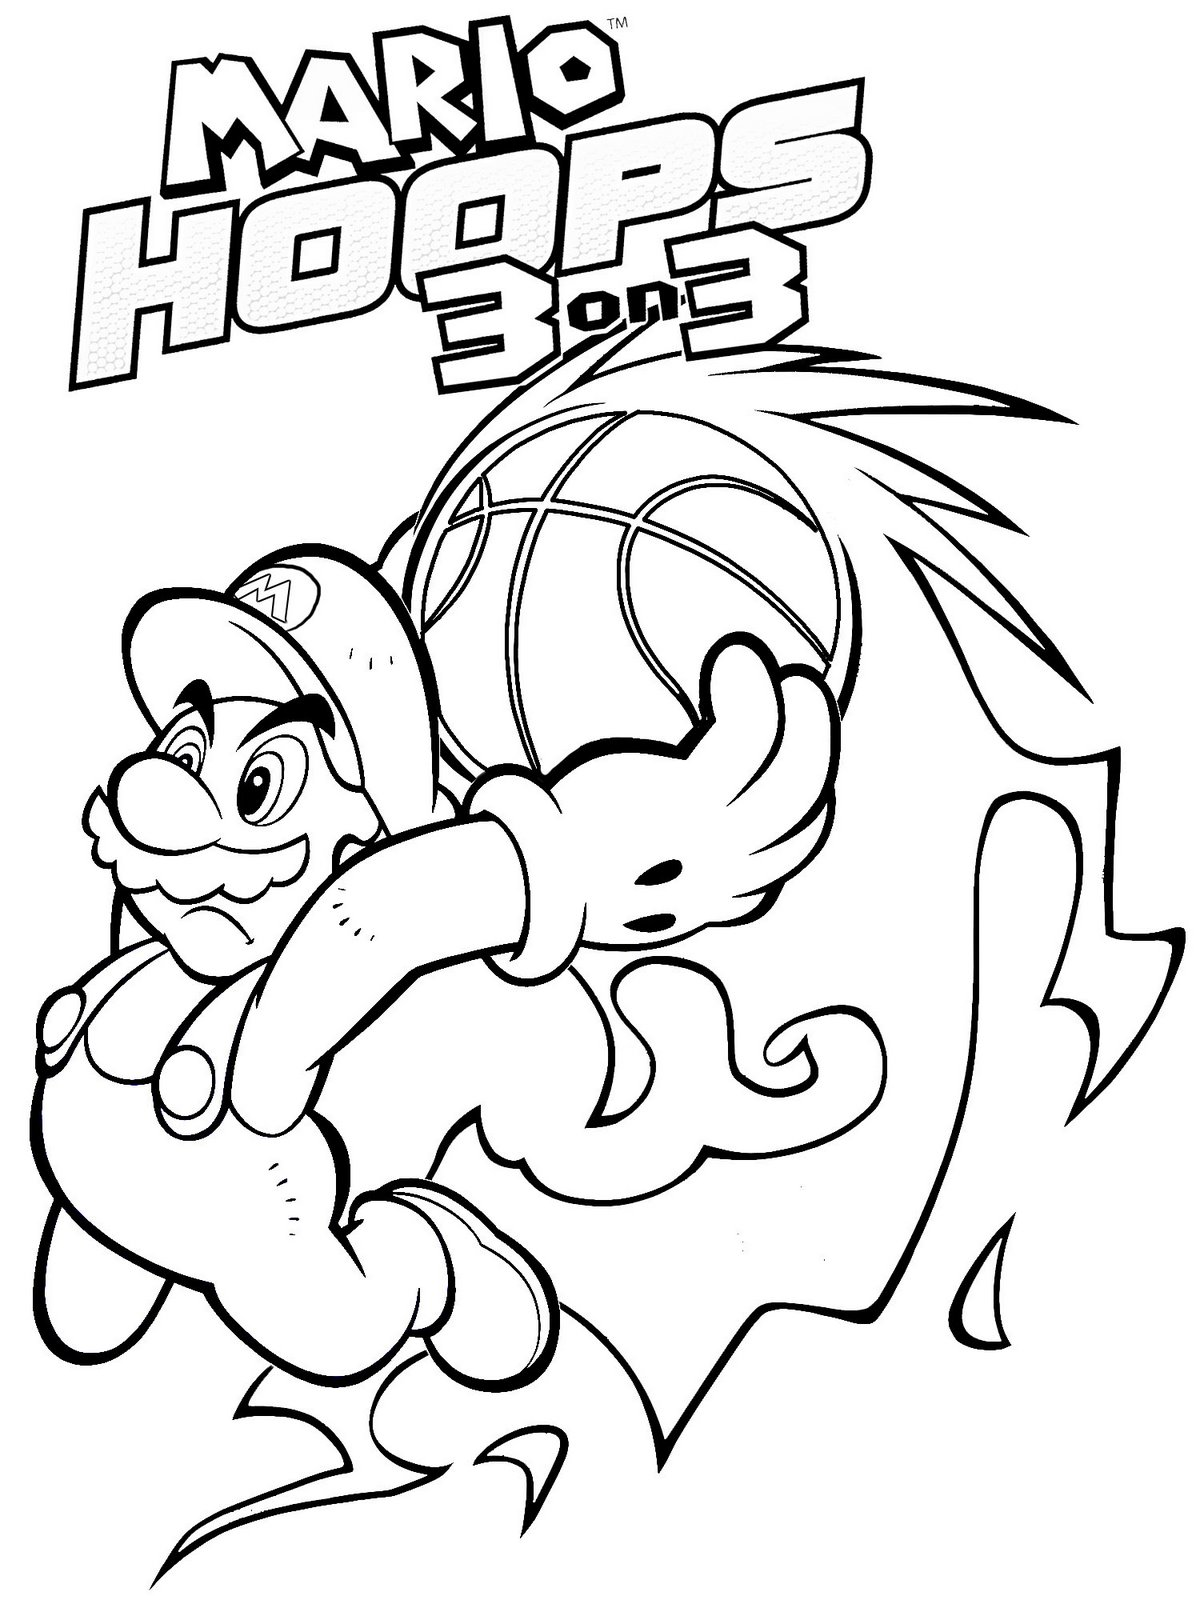 colour mario in - Mario Coloring Pages To Print